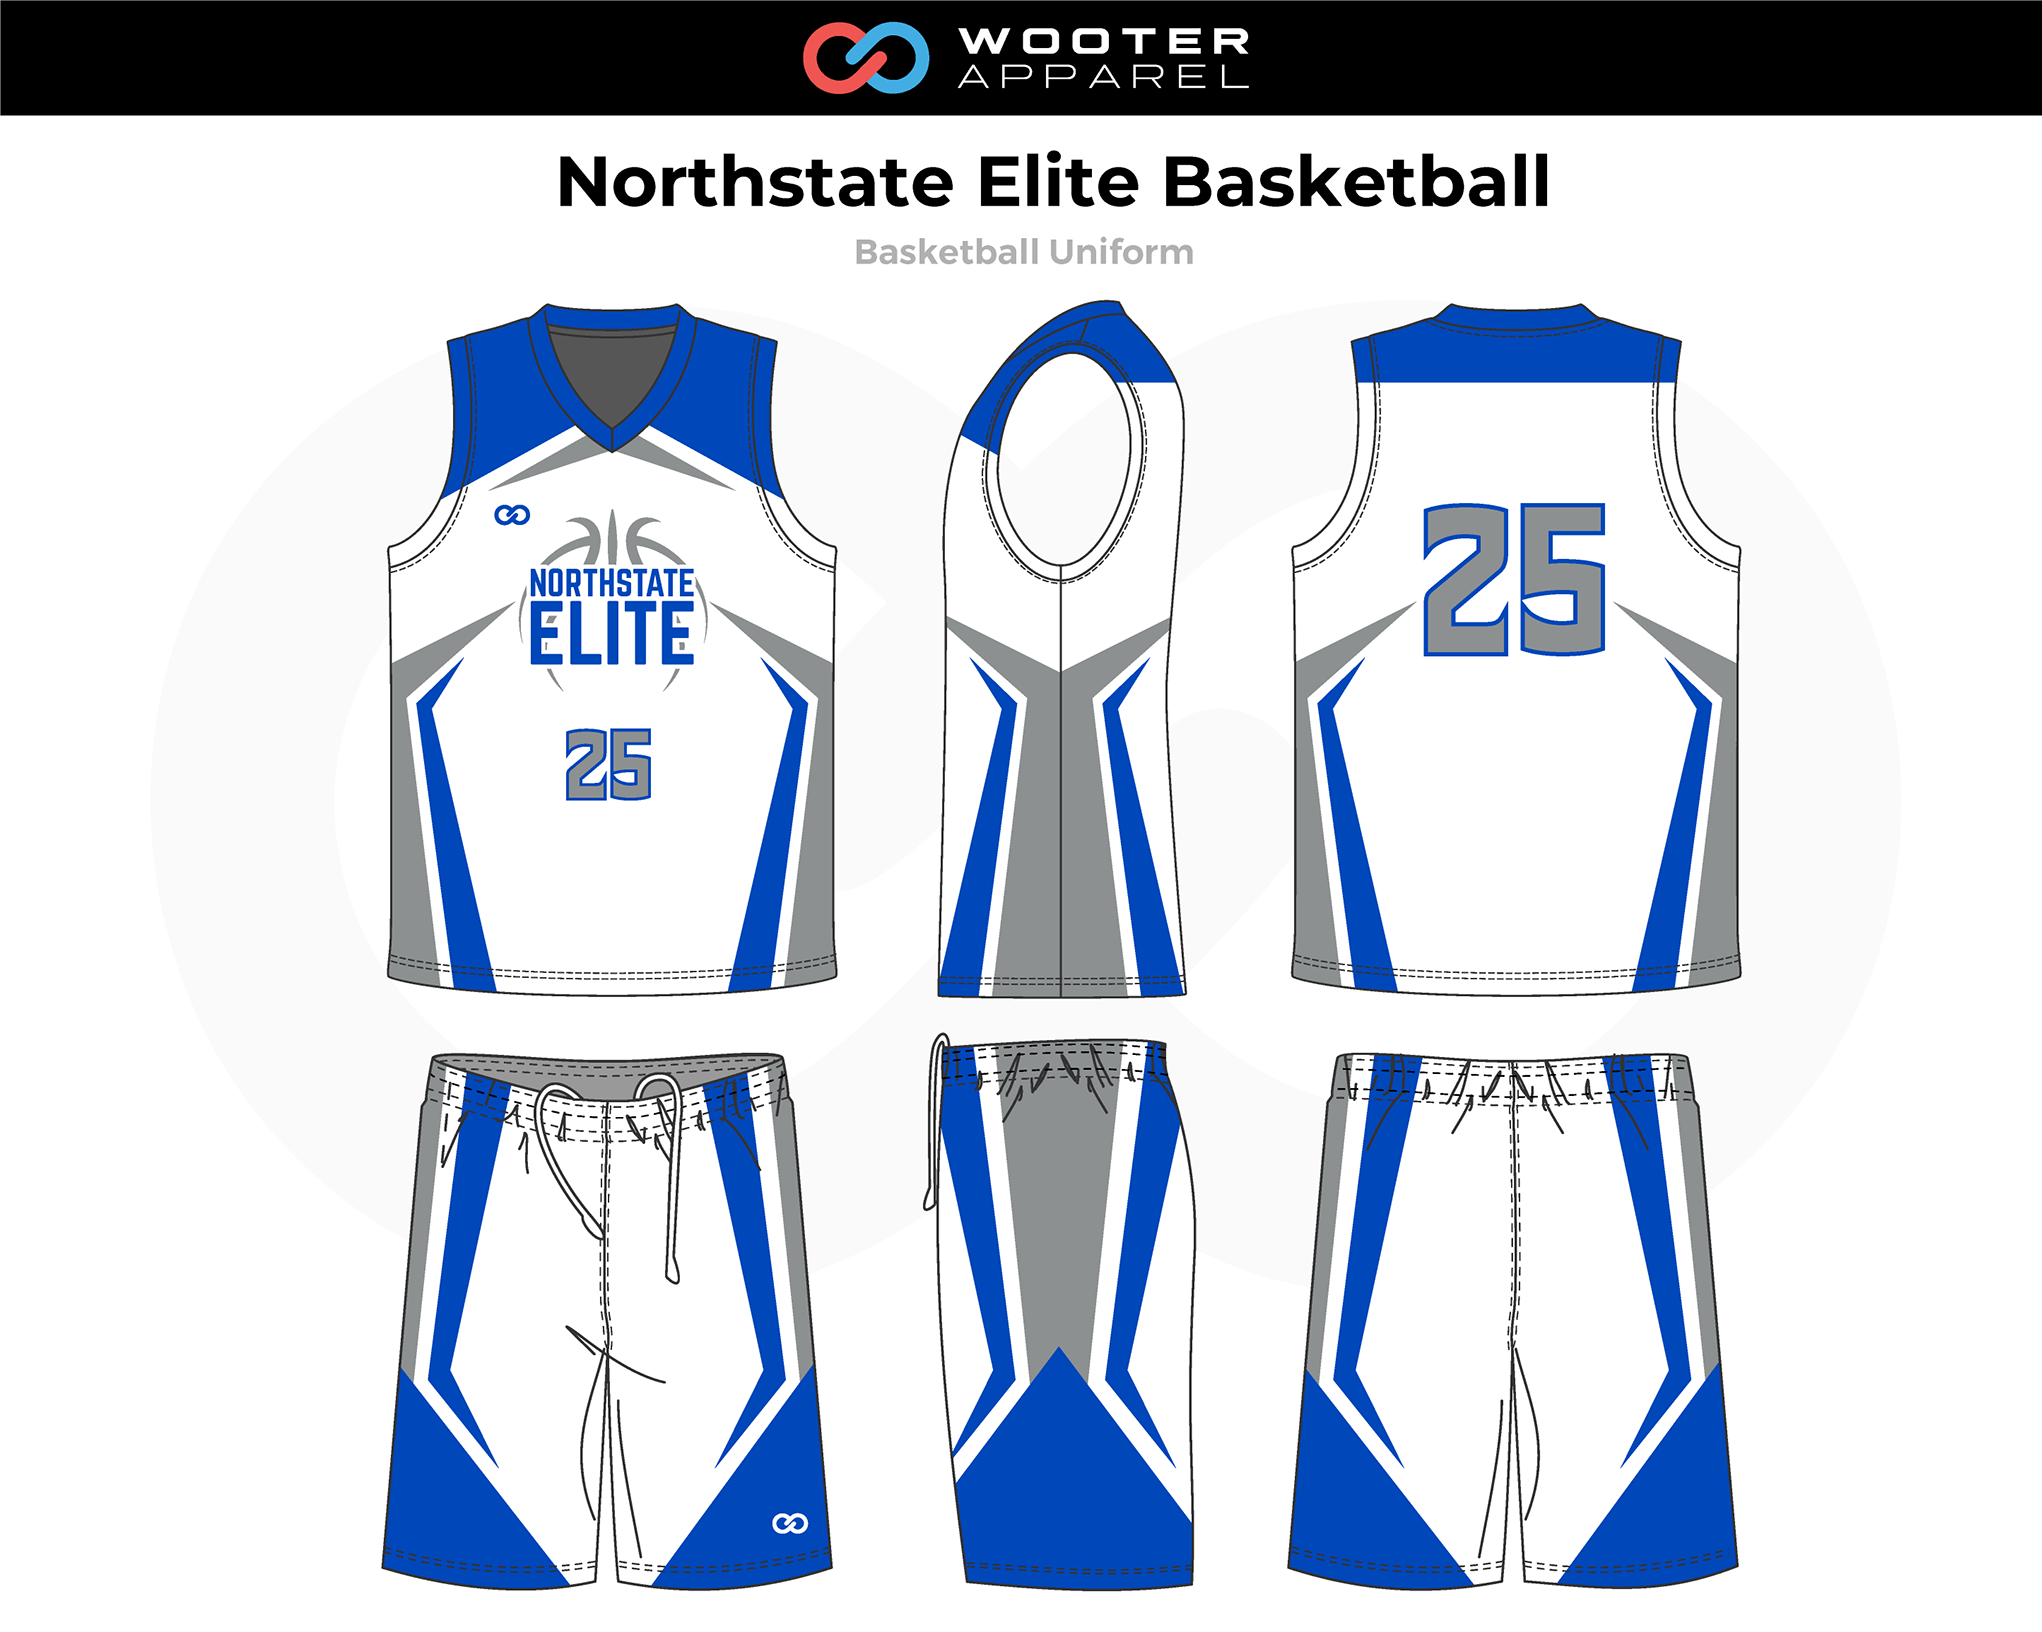 NORTHSTATE ELITE White Blue Gray Basketball Uniform, Jersey and Shorts